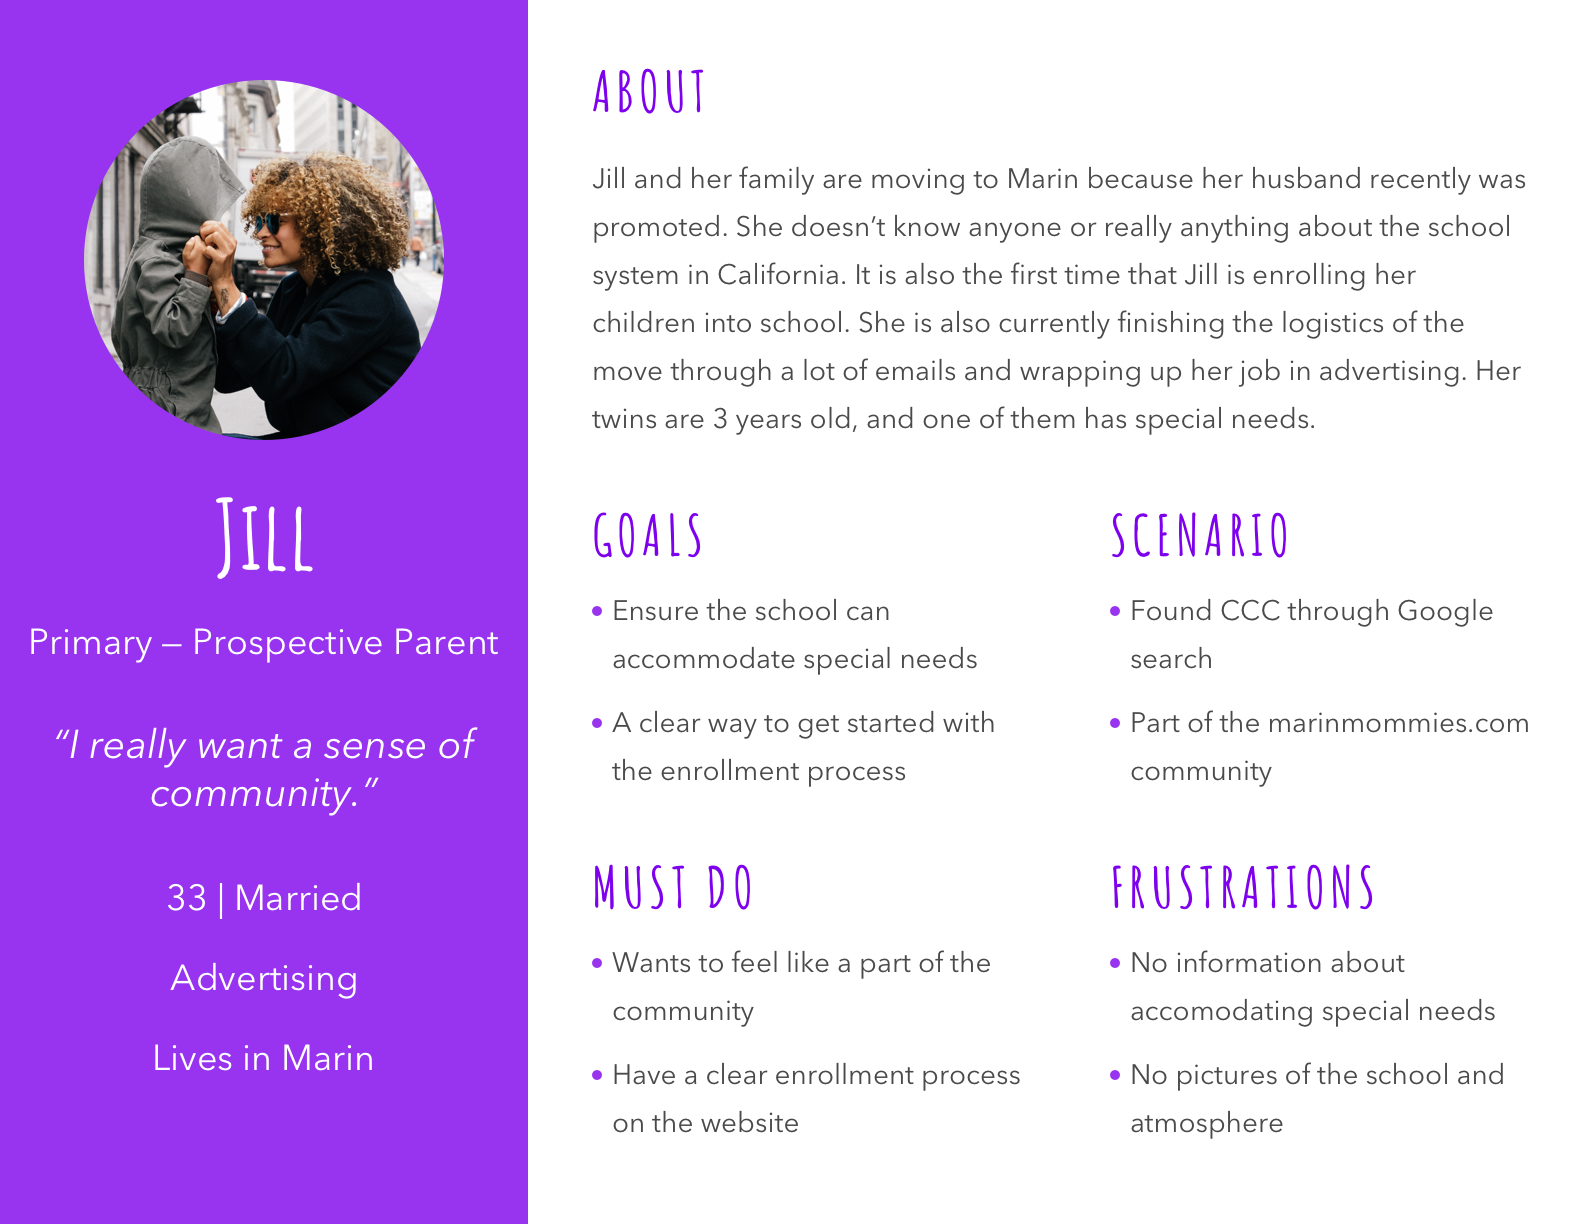 An infographic of the main persona which we are designing for.. Jill and her family are moving to Marin because her husband recently was promoted. She doesn't know anyone or really anything about the school system in California. It is also the first time that Jill is enrolling her children into school. She is also currently finishing the logistics of the move through a lot of emails and wrapping up her job in advertising. Her twins are 3 years old, and one of them has special needs.